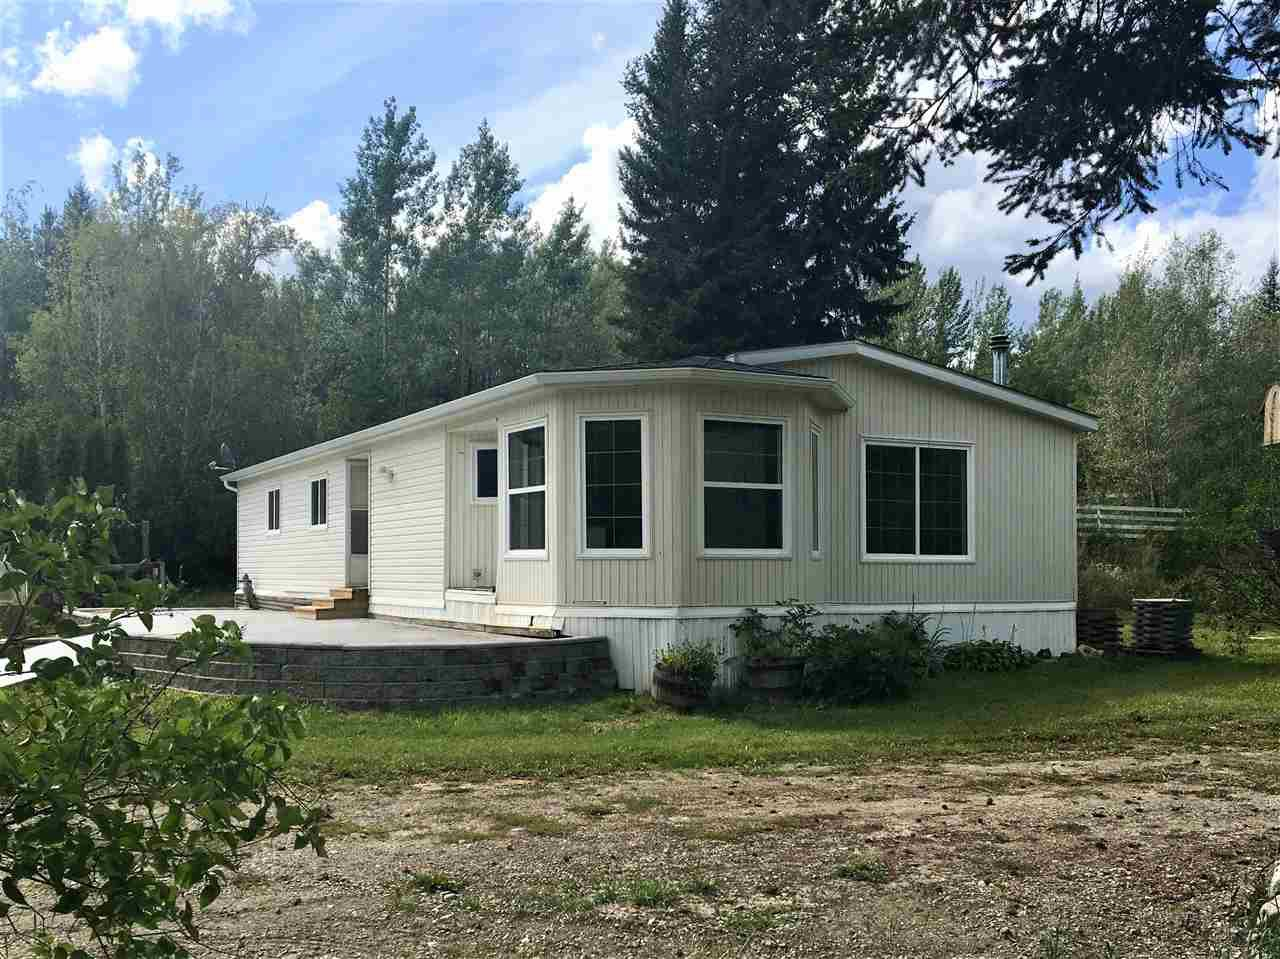 Photo 1: Photos: 2404 N VERNON Road in Quesnel: Bouchie Lake Manufactured Home for sale (Quesnel (Zone 28))  : MLS®# R2492081